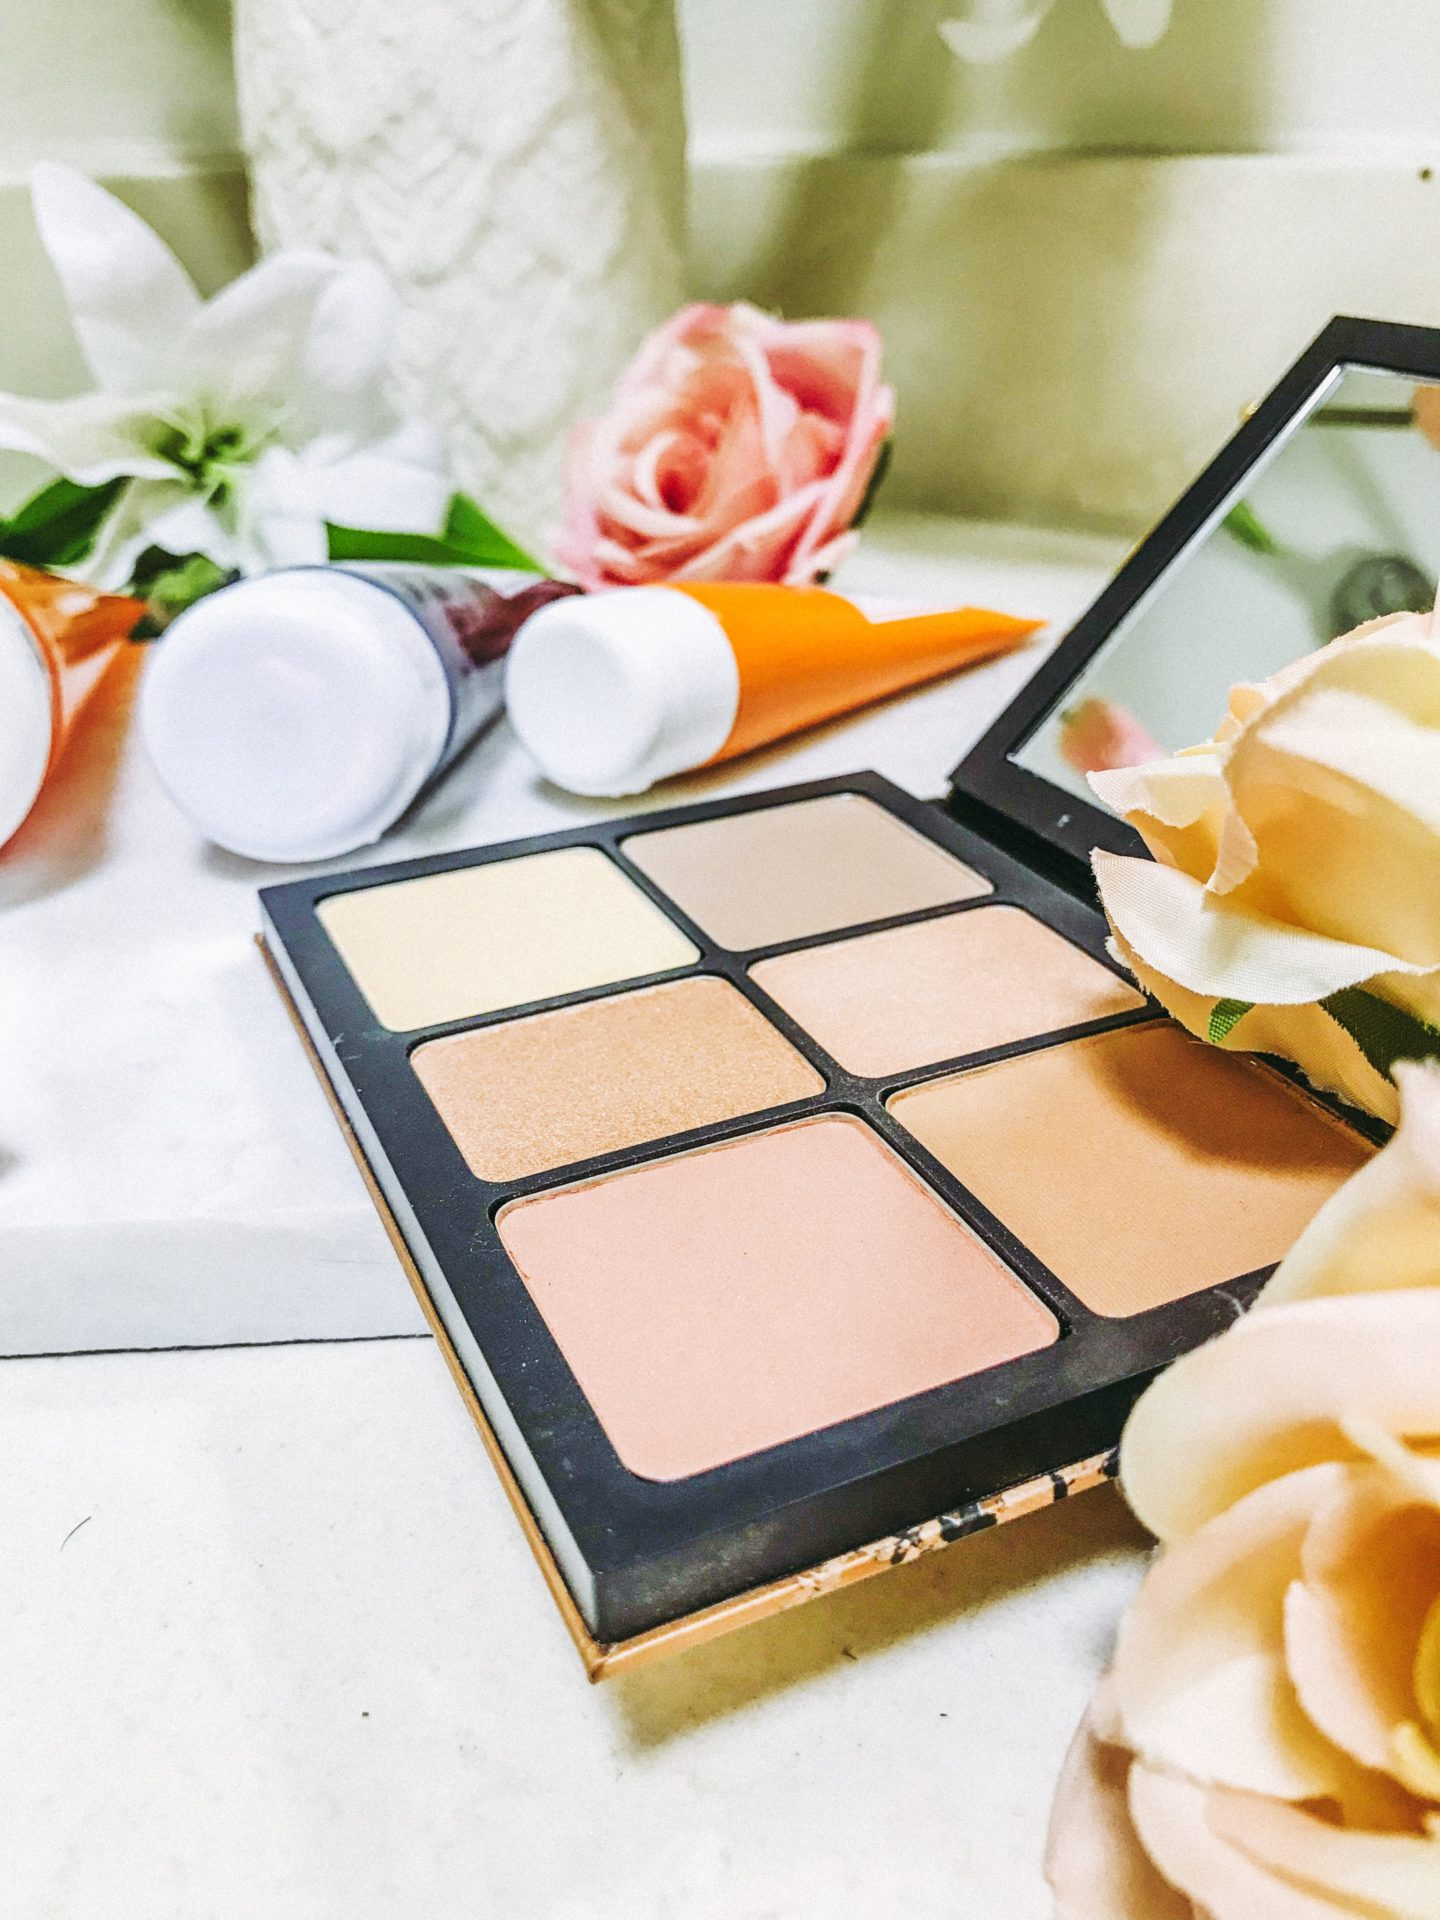 Daily Beauty Routine for Fall - Smashbox Cali Contour Kit - thecasualfree.com